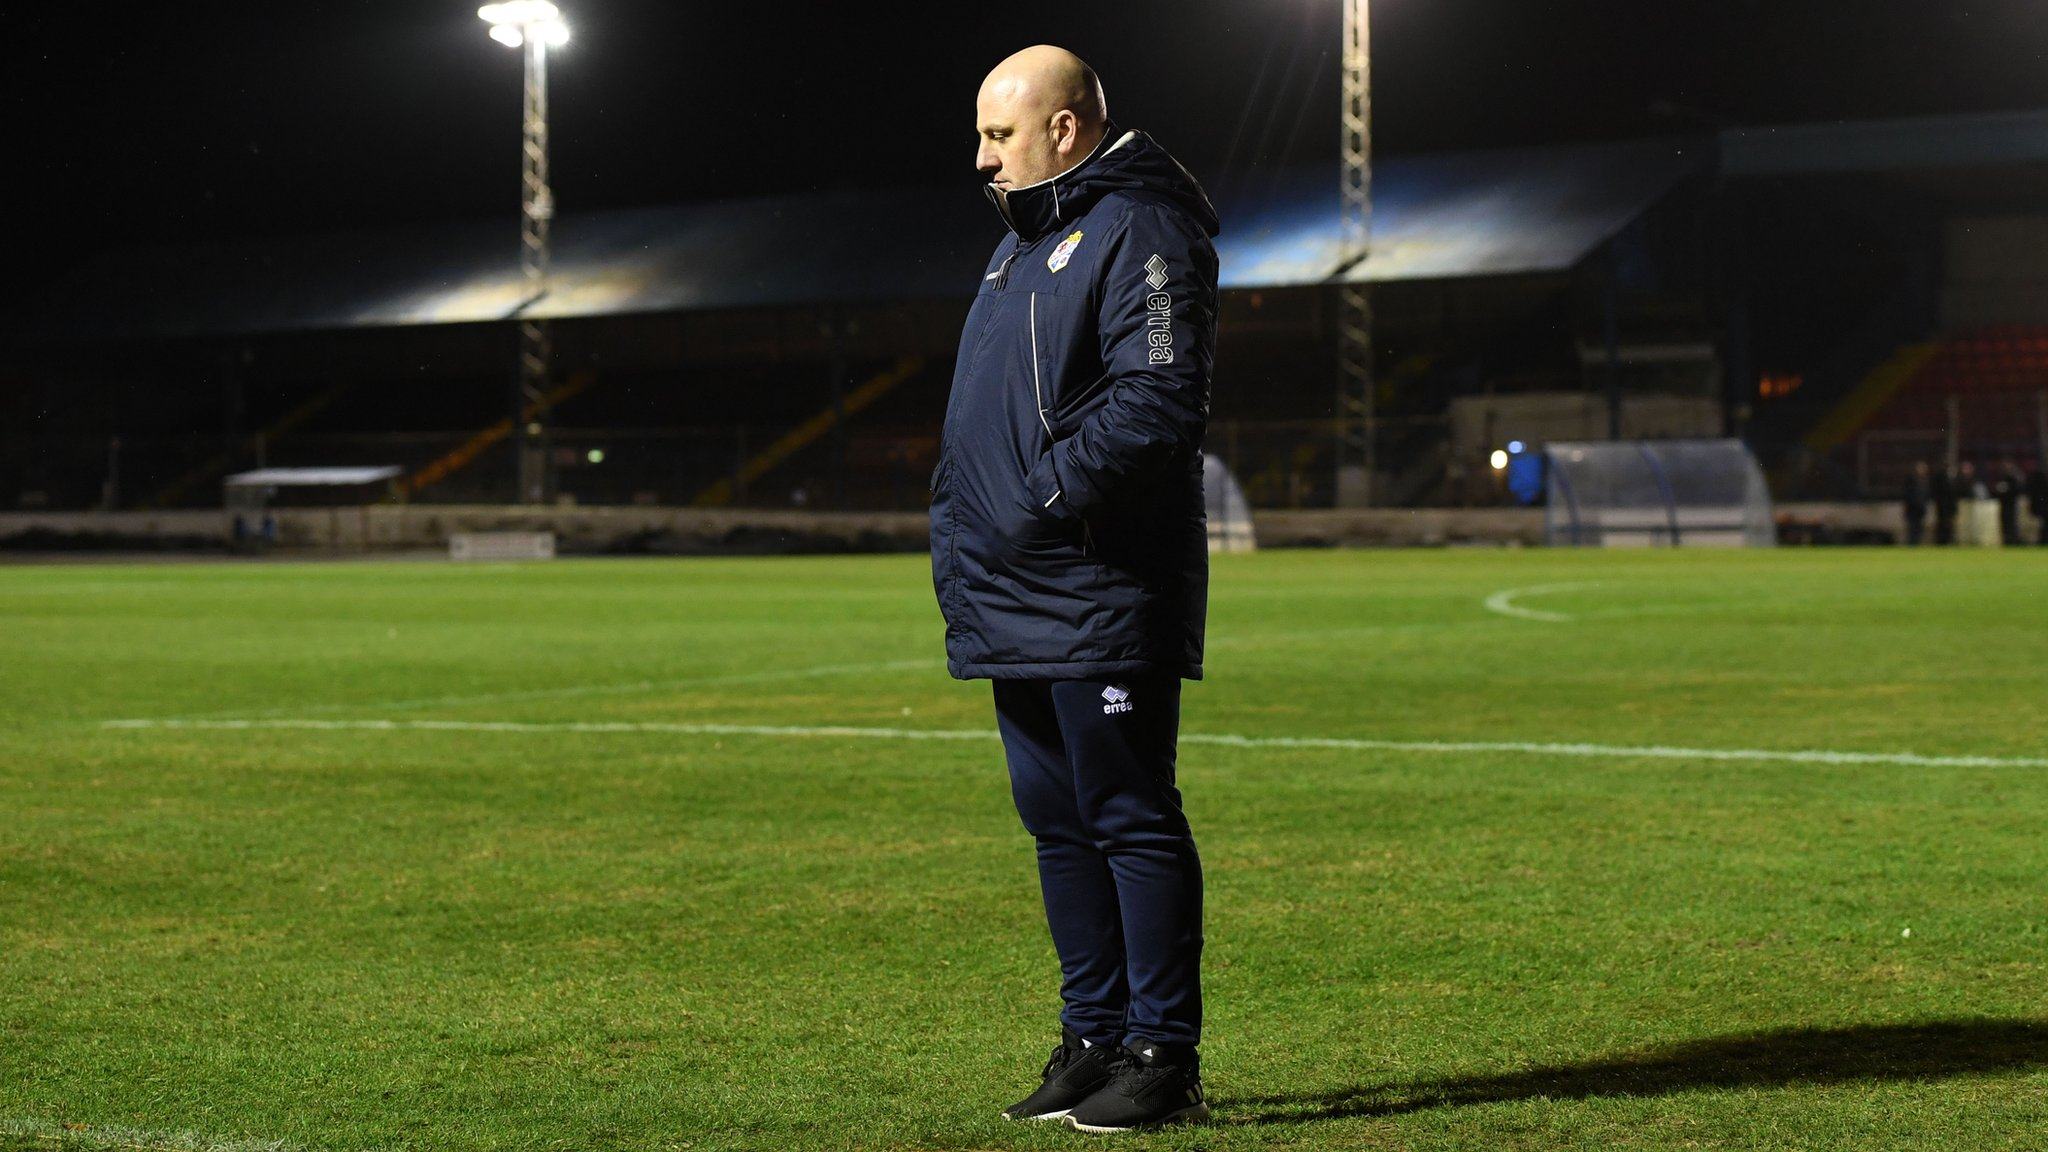 Cowdenbeath unhappy as Rangers Cup tie is postponed because of frozen pitch